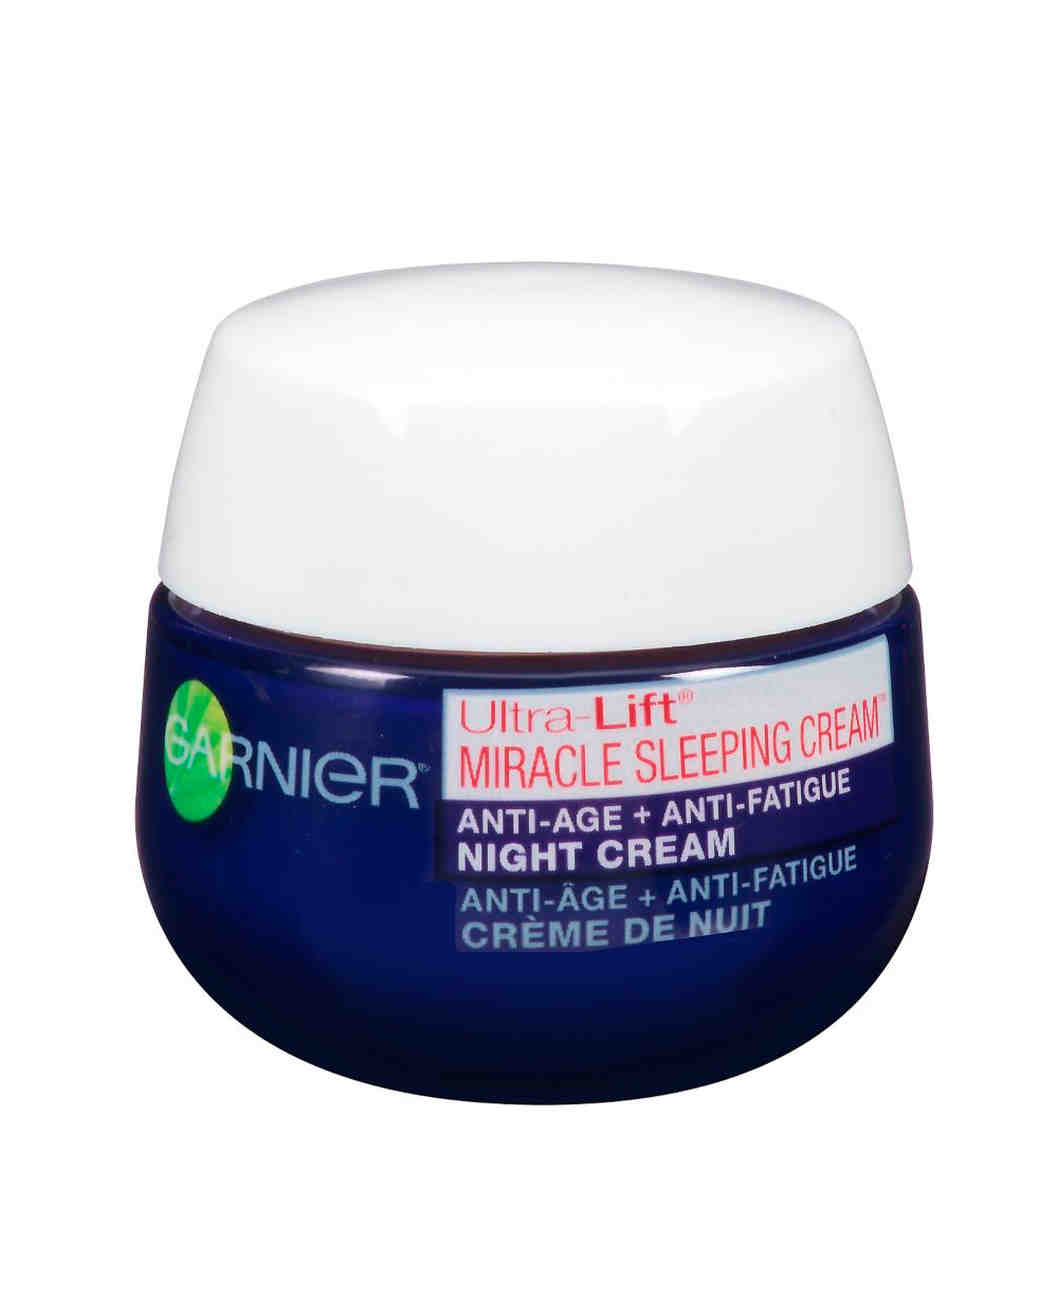 overnight-beauty-products-garnier-ultra-life-miracle-sleeping-cream-0915.jpg